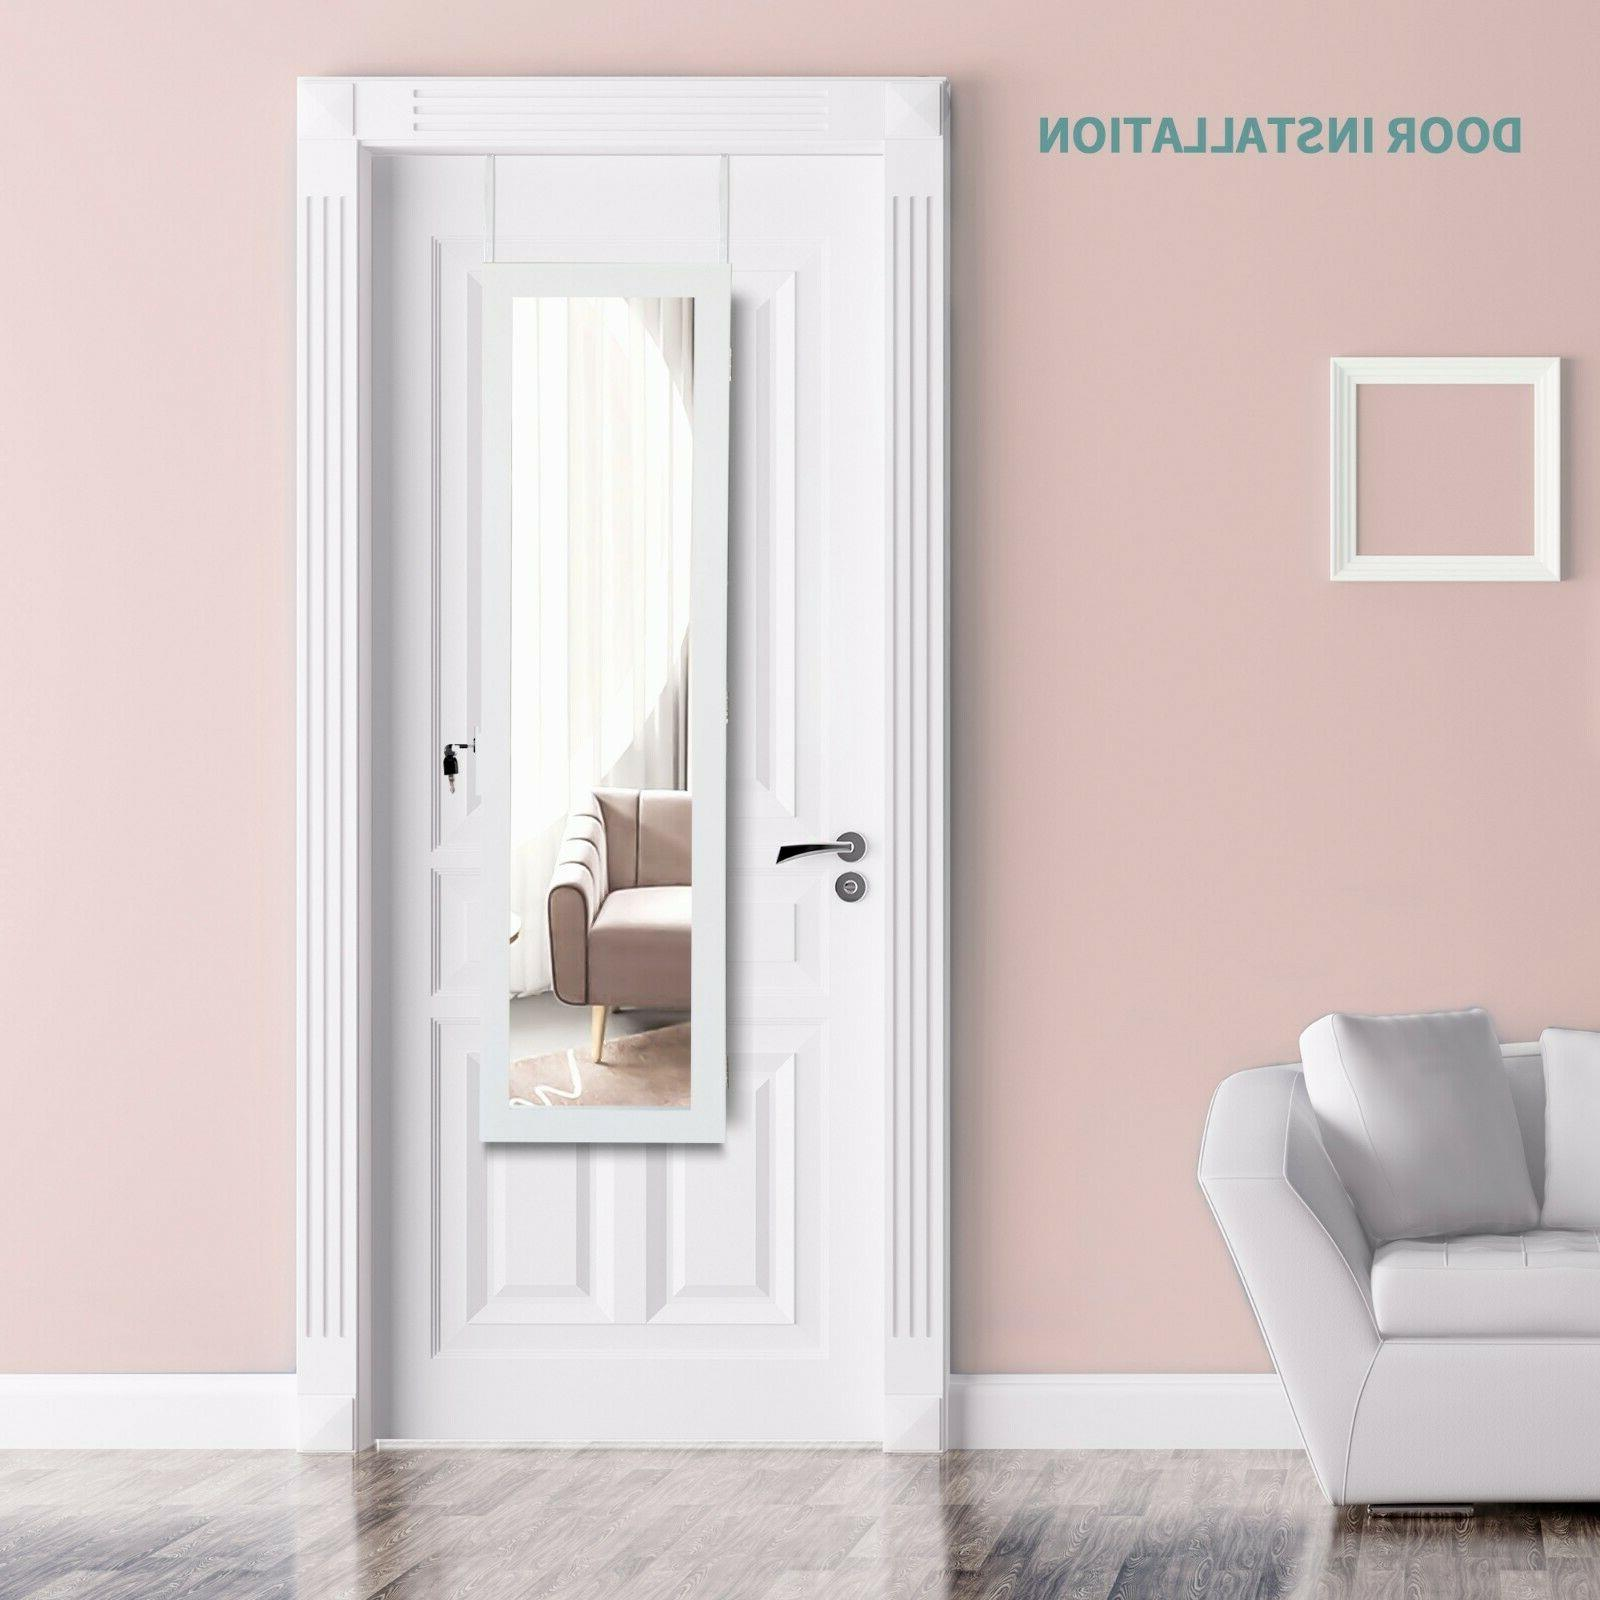 LED Wall/Door Mounted Jewelry Armoire Length